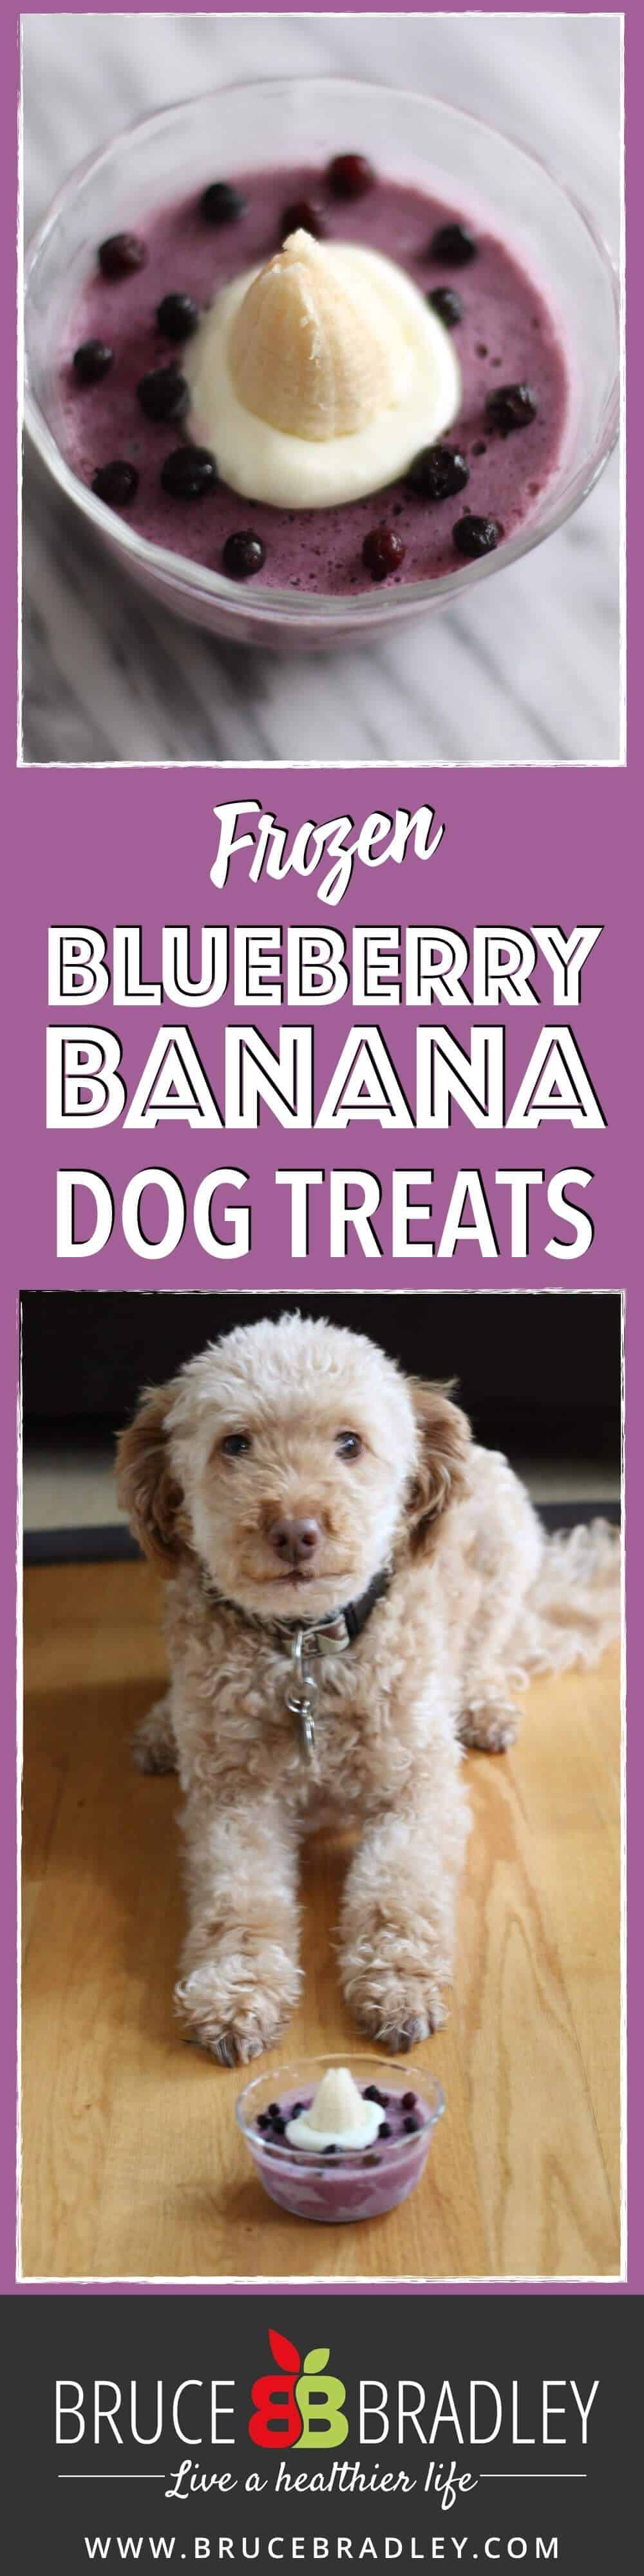 These three ingredient frozen dog treats are the perfect way to celebrate or reward your special pooch. Made with yogurt, blueberries, and a banana, you can whip these treats up in less than 5 minutes, freeze, and share!